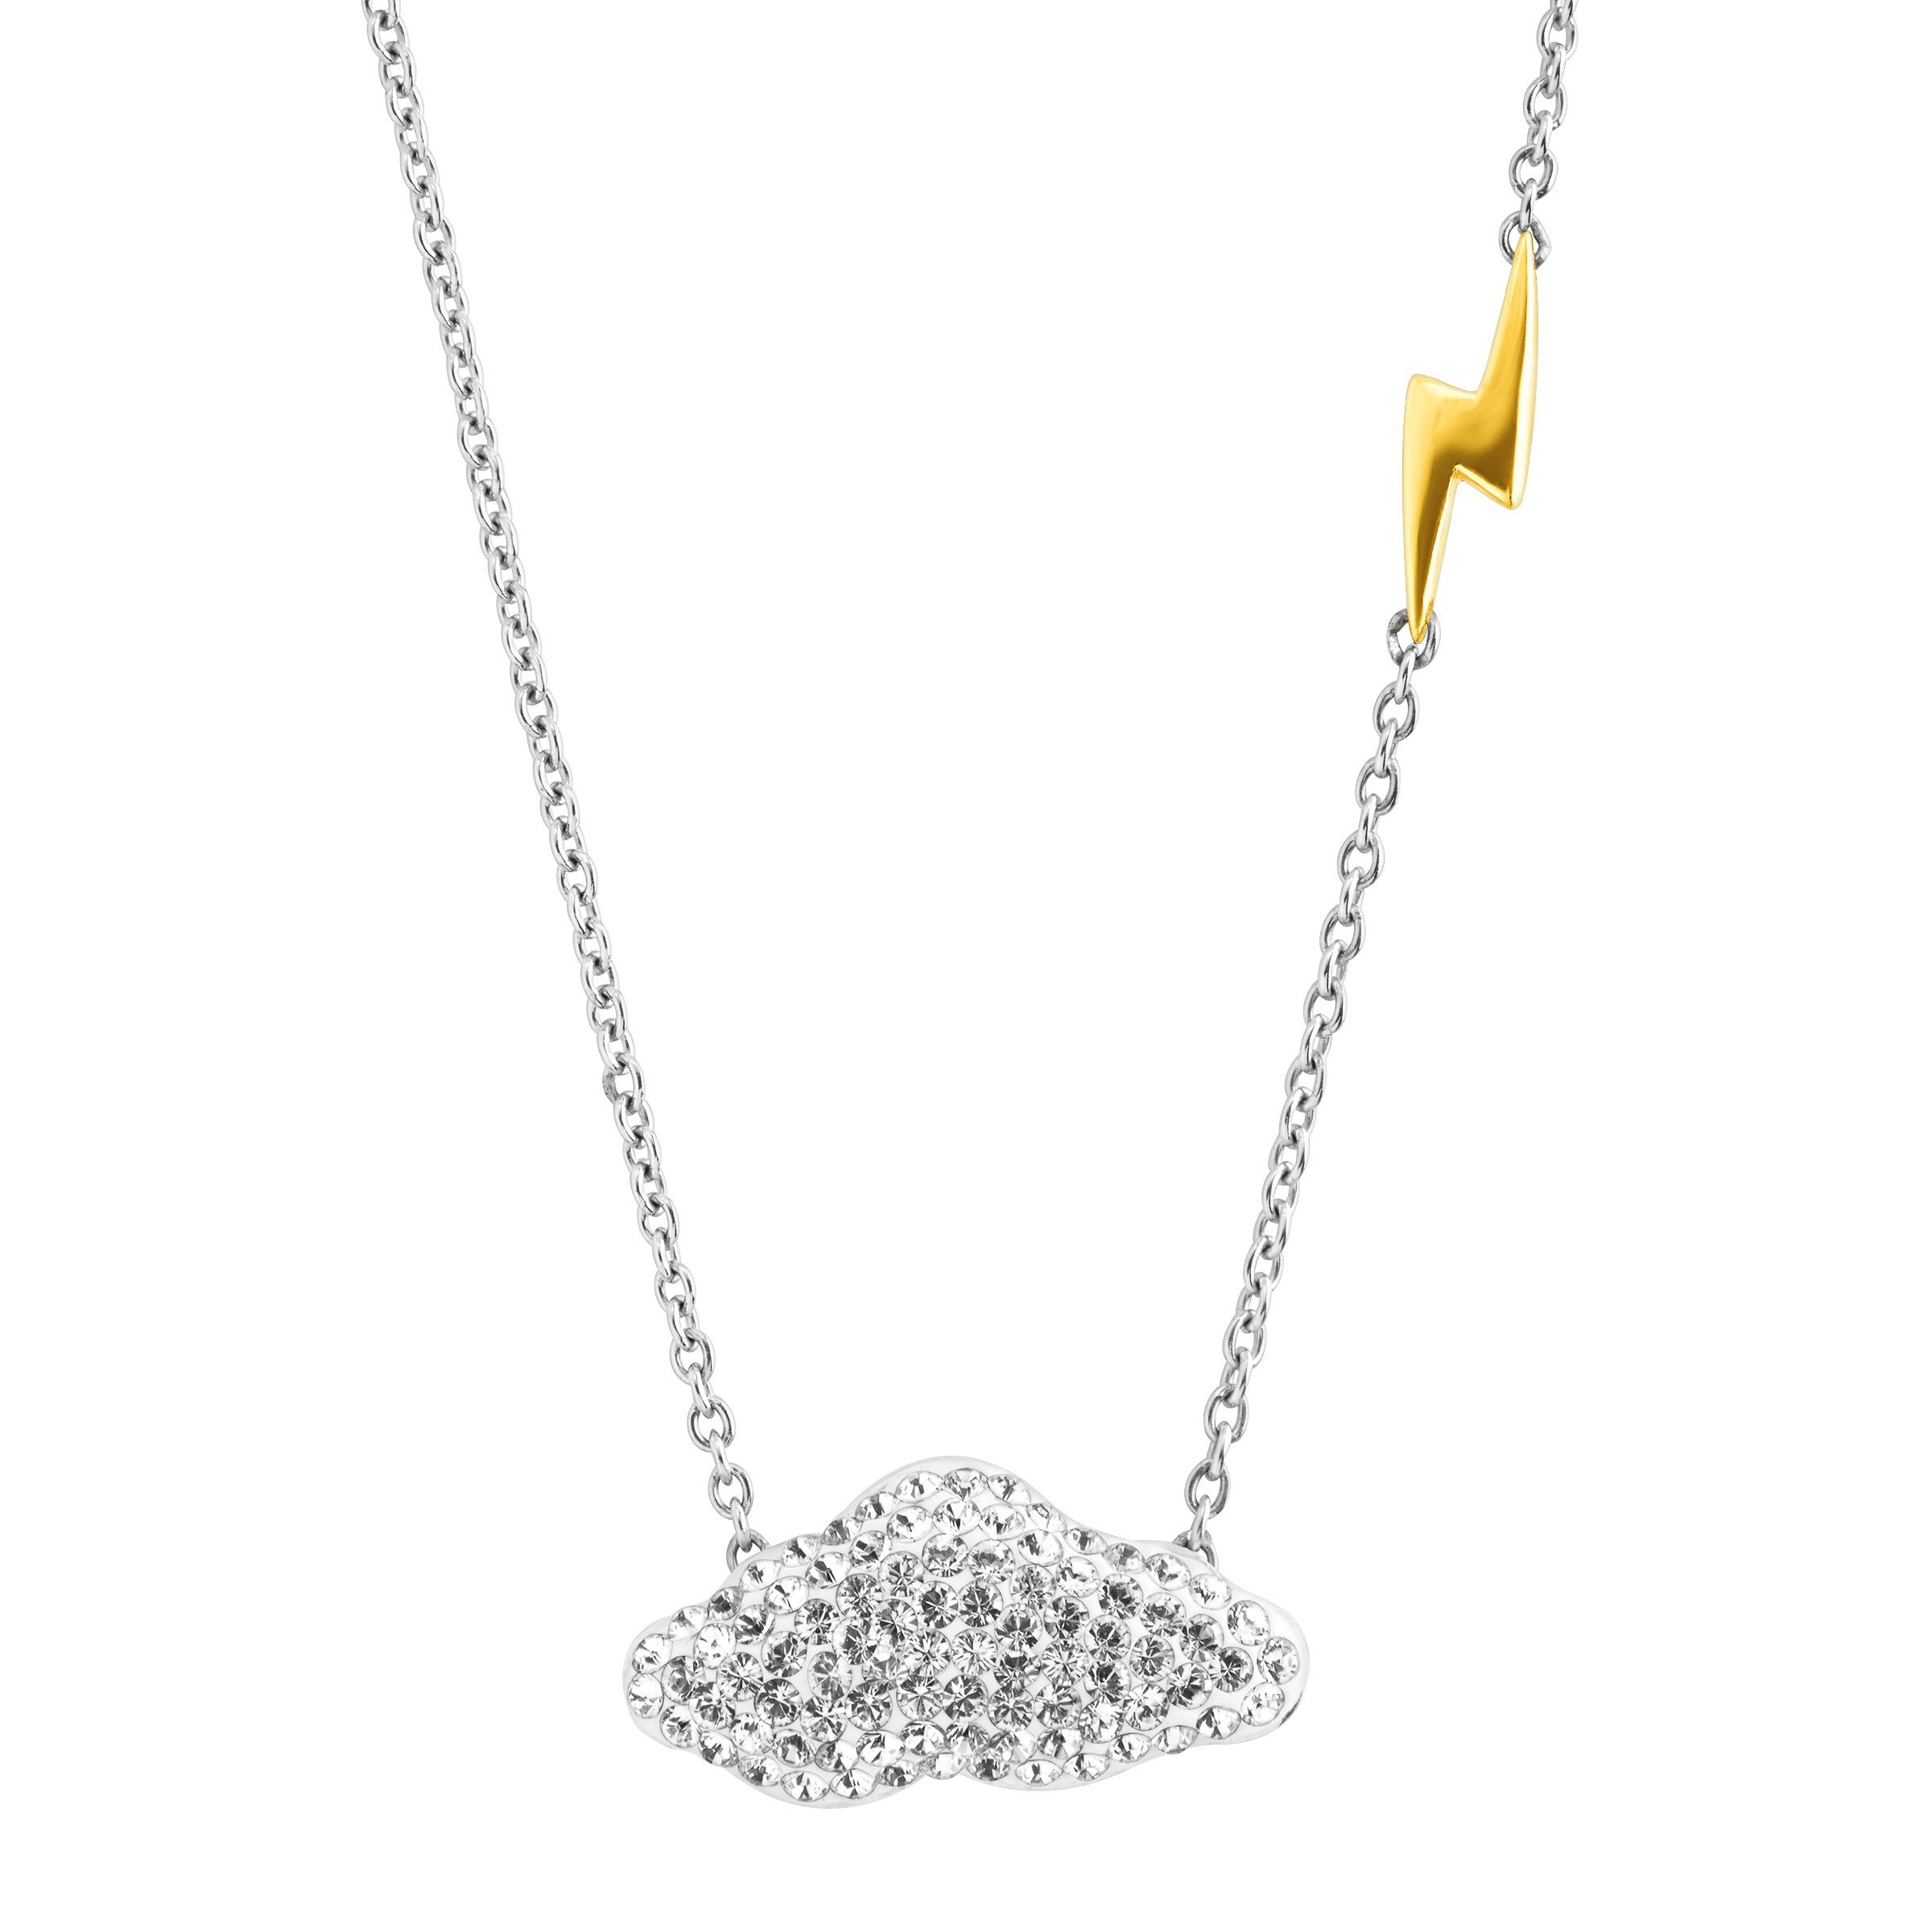 Crystaluxe Cloud & Thunderbolt Necklace with Swarovski Crystals in 18K Gold-Plated Sterling Silver